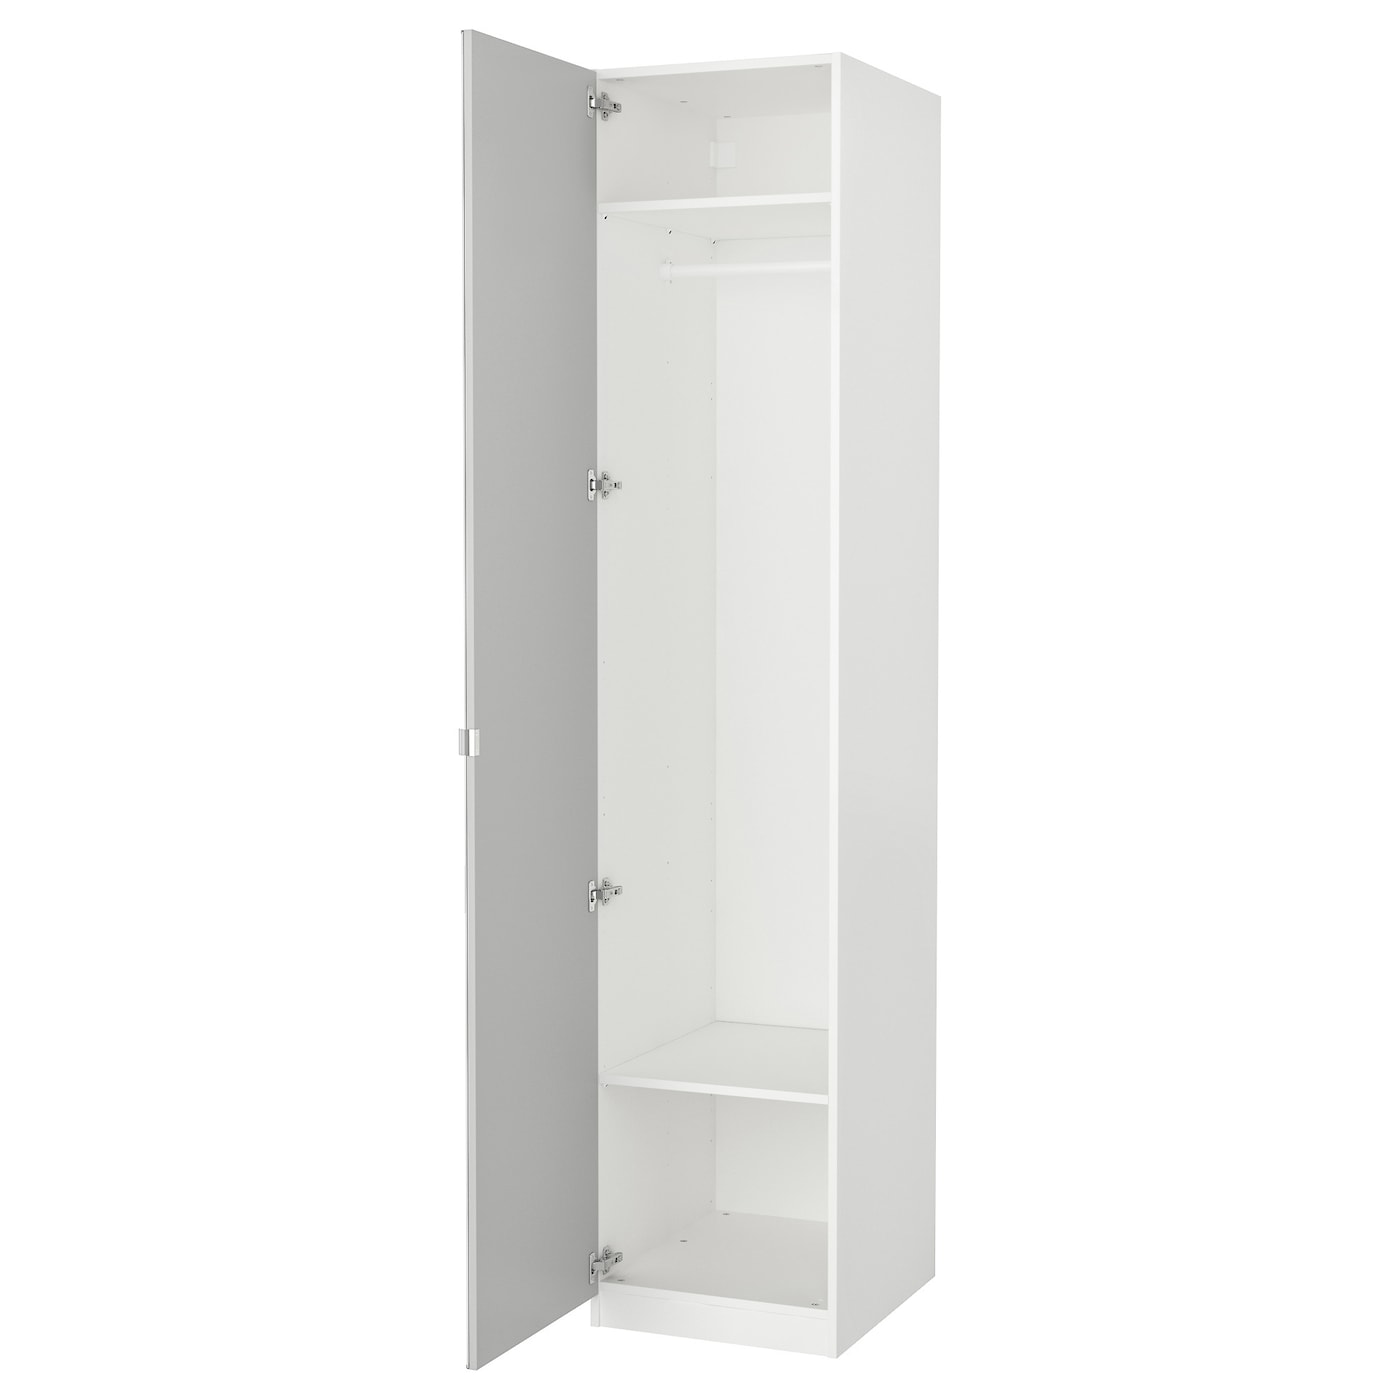 Pax wardrobe white vikedal mirror glass 50x60x236 cm ikea for Miroir 80 x 90